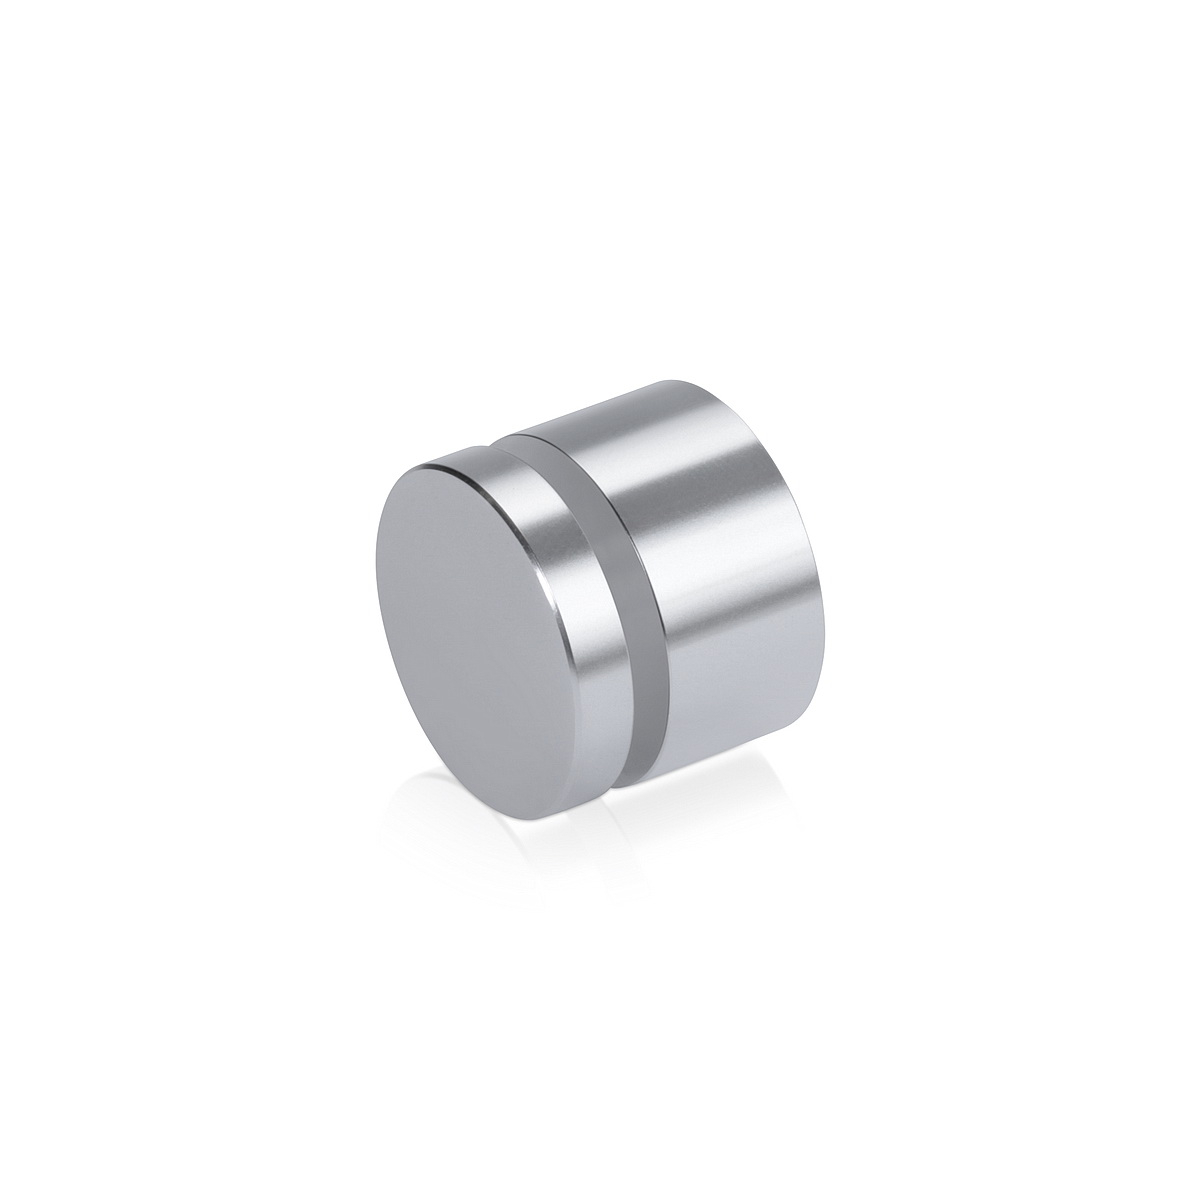 Affordable Aluminum Standoffs, Diameter: 1'', Standoff: 1/2'', Aluminum Silver Finish